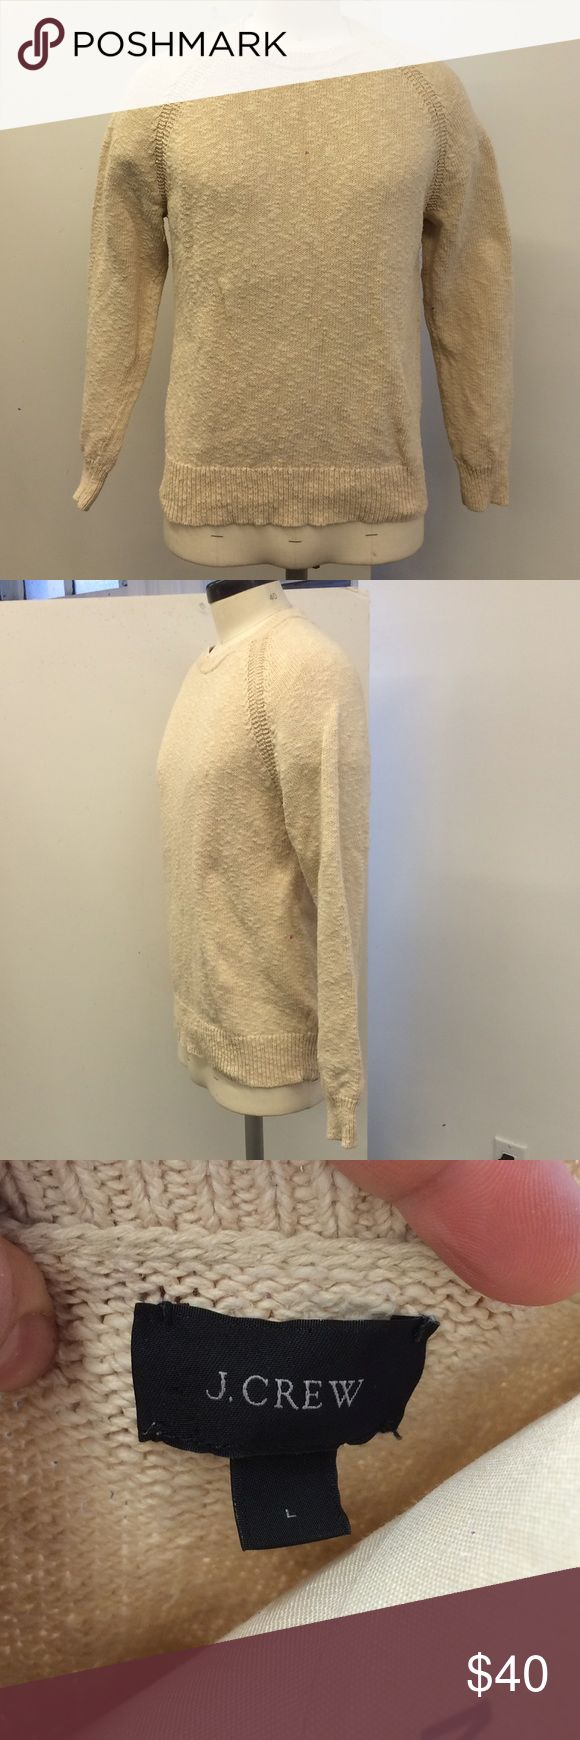 J.Crew | Men's cream knit sweater | Men's L This is a great men's J.Crew cream knit sweater. It's definitely unisex - pair it with jeans and a button up for a classic look, or leggings and Hunter boots for Sunday brunch. Size Men's L, but can comfortably fit up to XL or XXL for females. 100% cotton.  🍎 ships from nyc 💯 all products authentic 🚫 smoke free home ❤️ thank you :) J. Crew Sweaters Crewneck